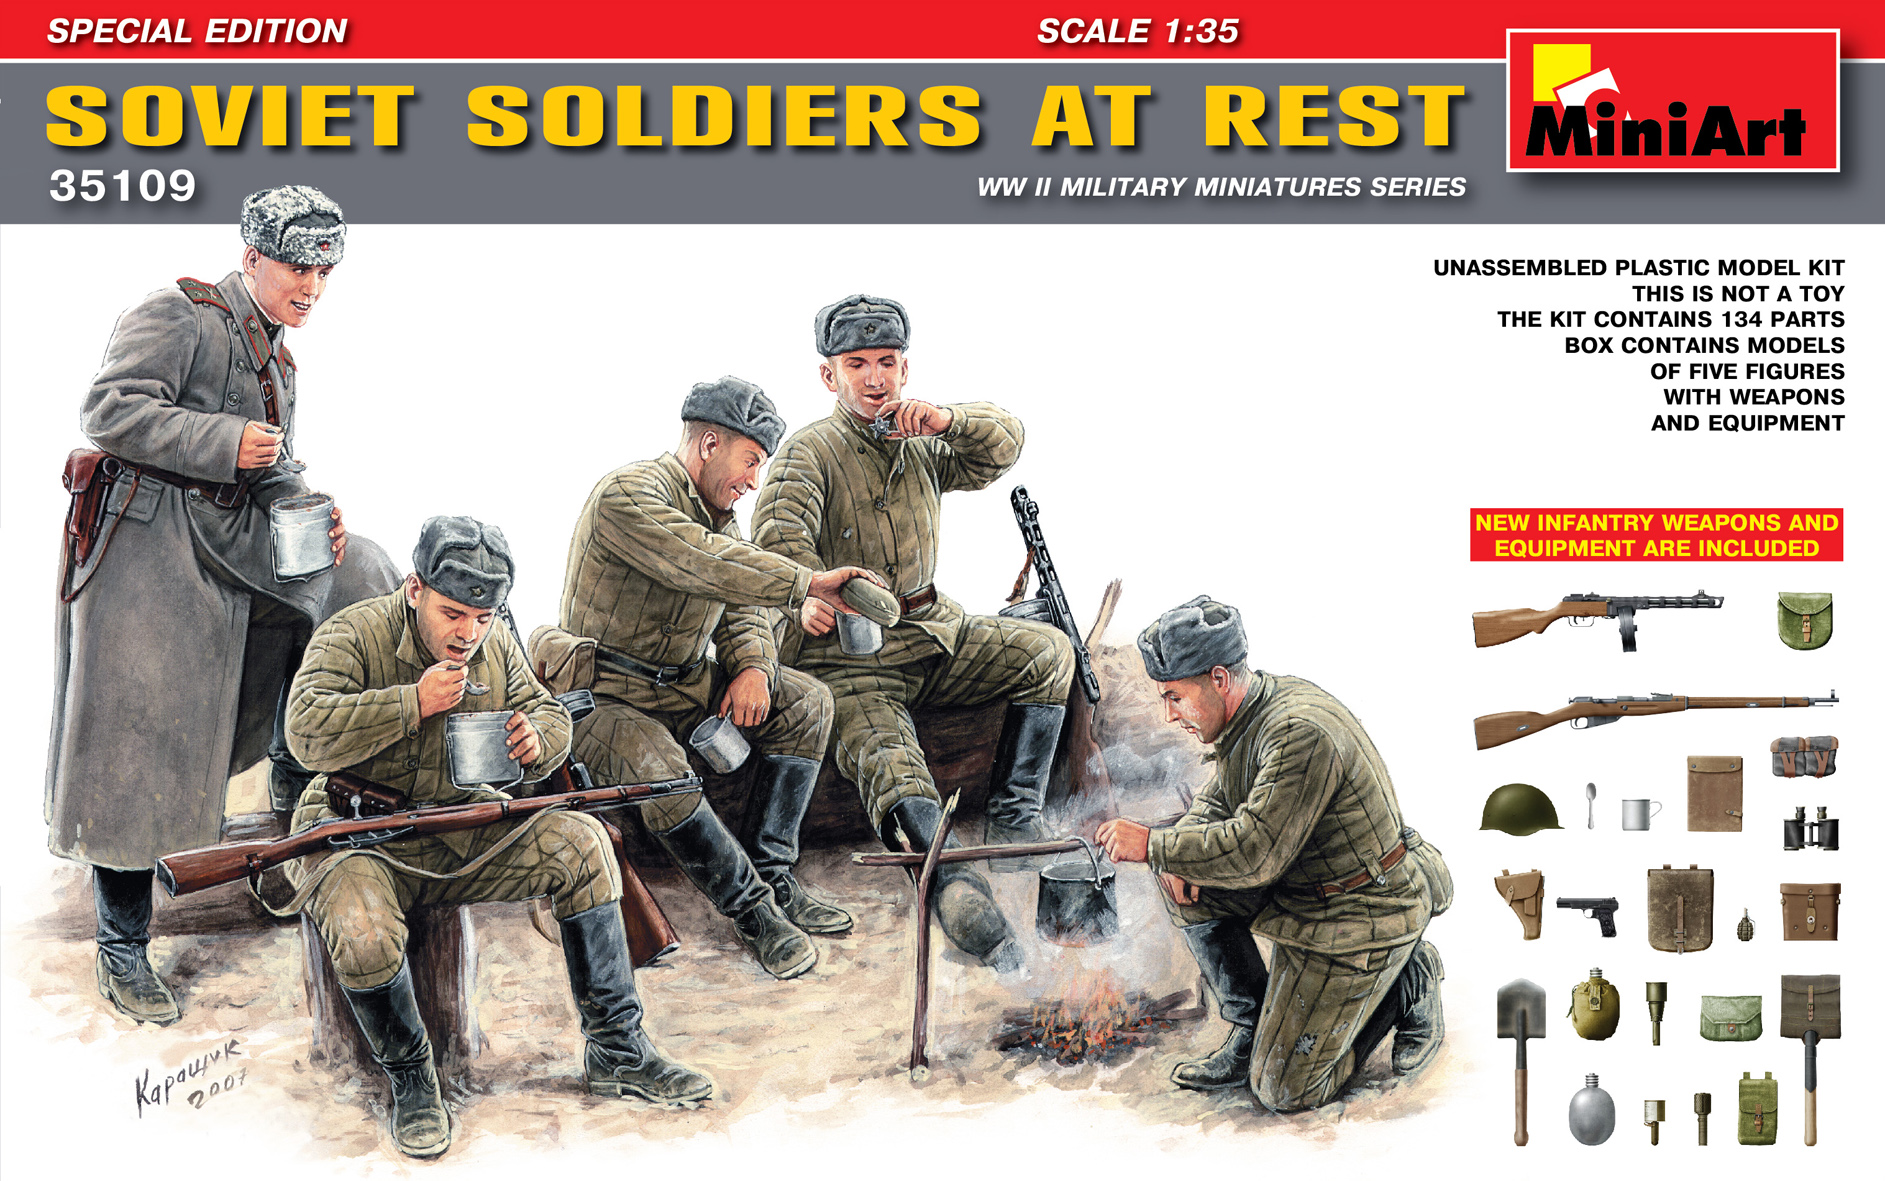 35109 SOVIET SOLDIERS AT REST. SPECIAL EDITION